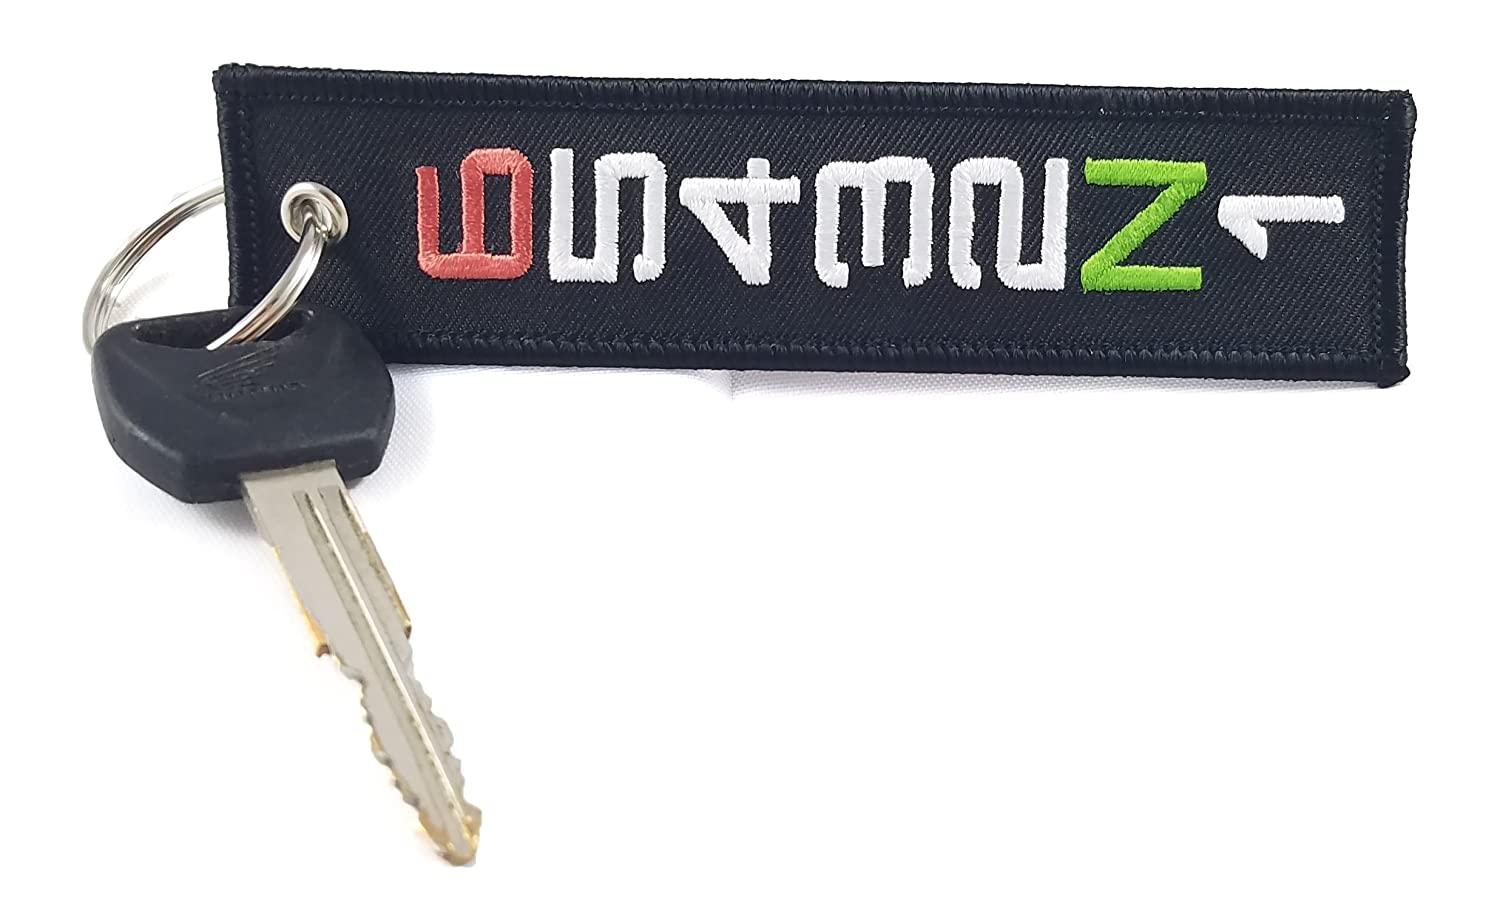 Scooters Gifts Cars CG Keytags Shift Unique Keychains for Motorcycles Centurion Goods and More